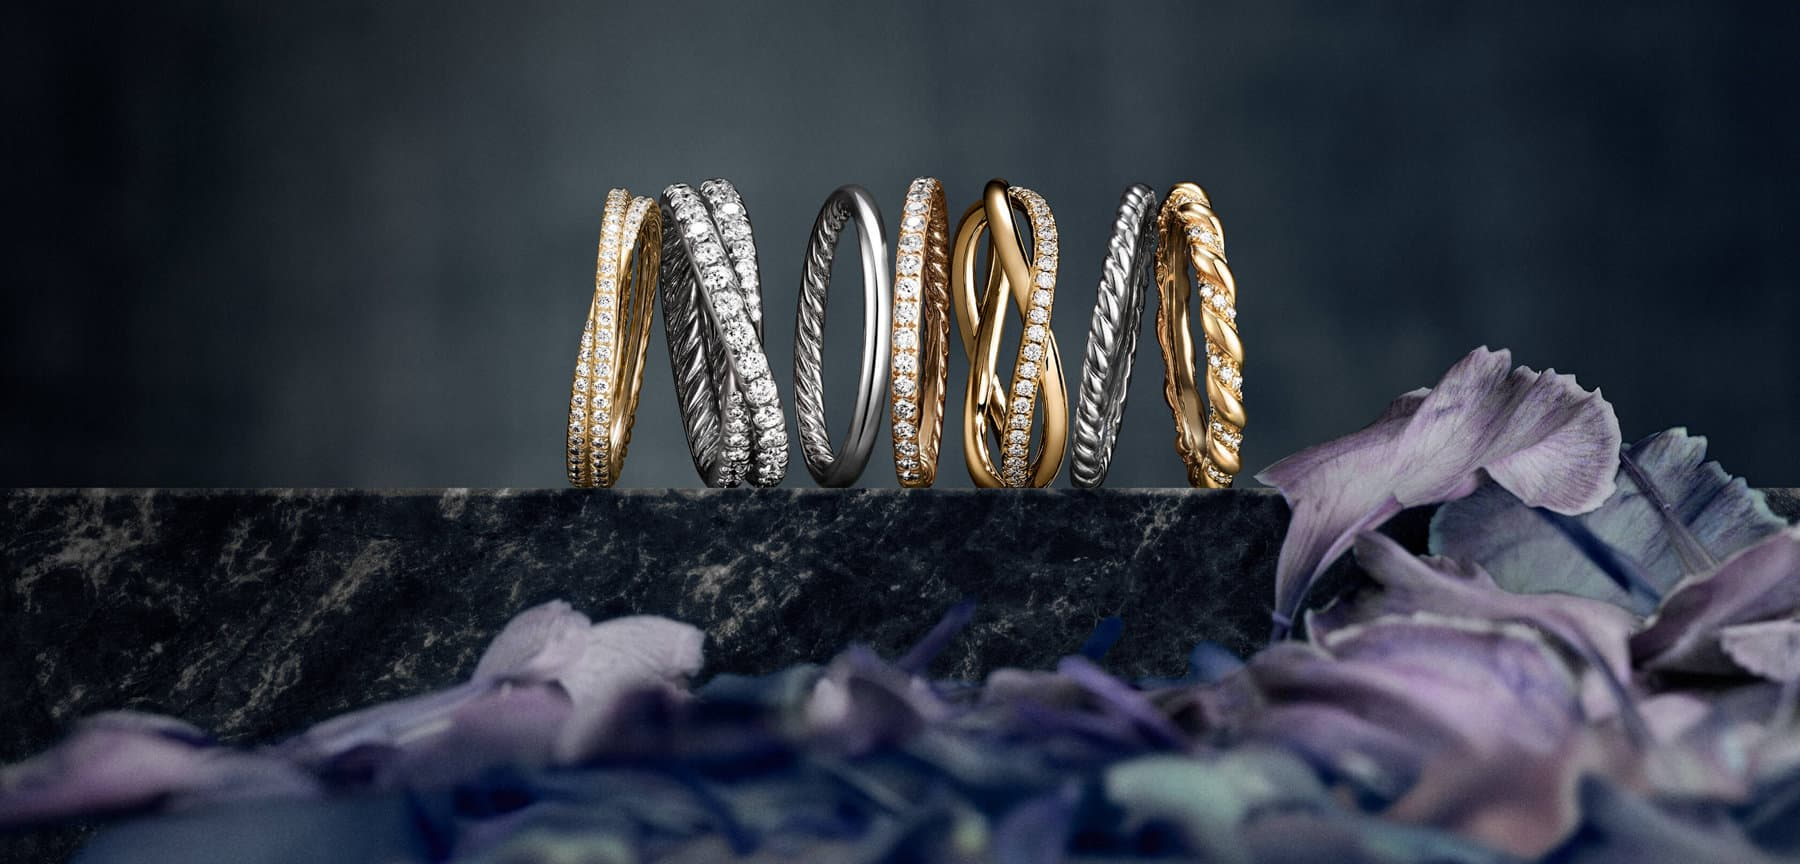 A color photograph shows a row of seven David Yurman wedding bands from the DY Crossover, DY Eden, DY Wisteria and DY Unity collections atop a dark, marbled stone surface with a dark background and flowers in the foreground. Each is crafted from 18K yellow or rose gold, or platinum, with or without diamonds.